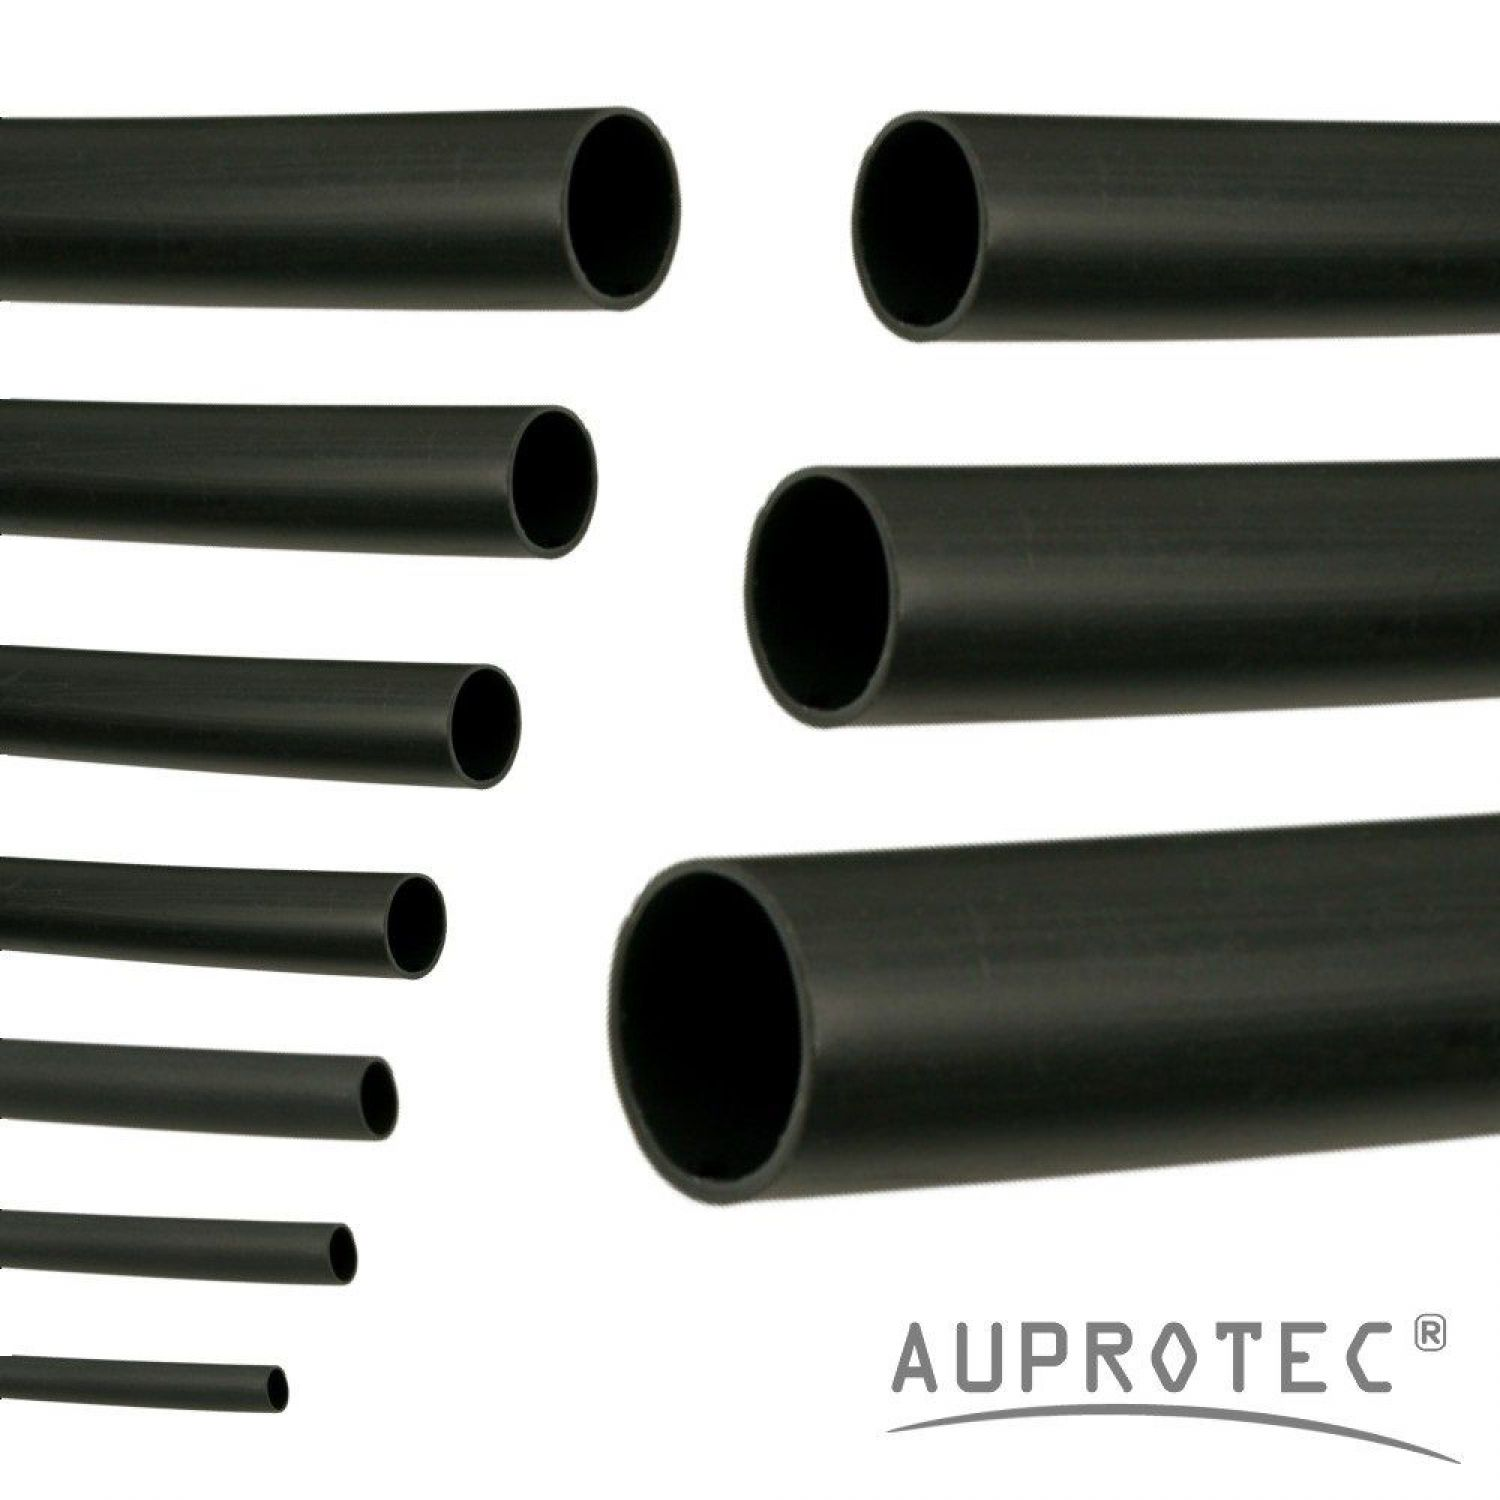 Auprotec Insulation Sleeve Electrical Pvc Wire Loom Cable Protection Electric Pipe Buy Wiring Conduit Tube 5 50m